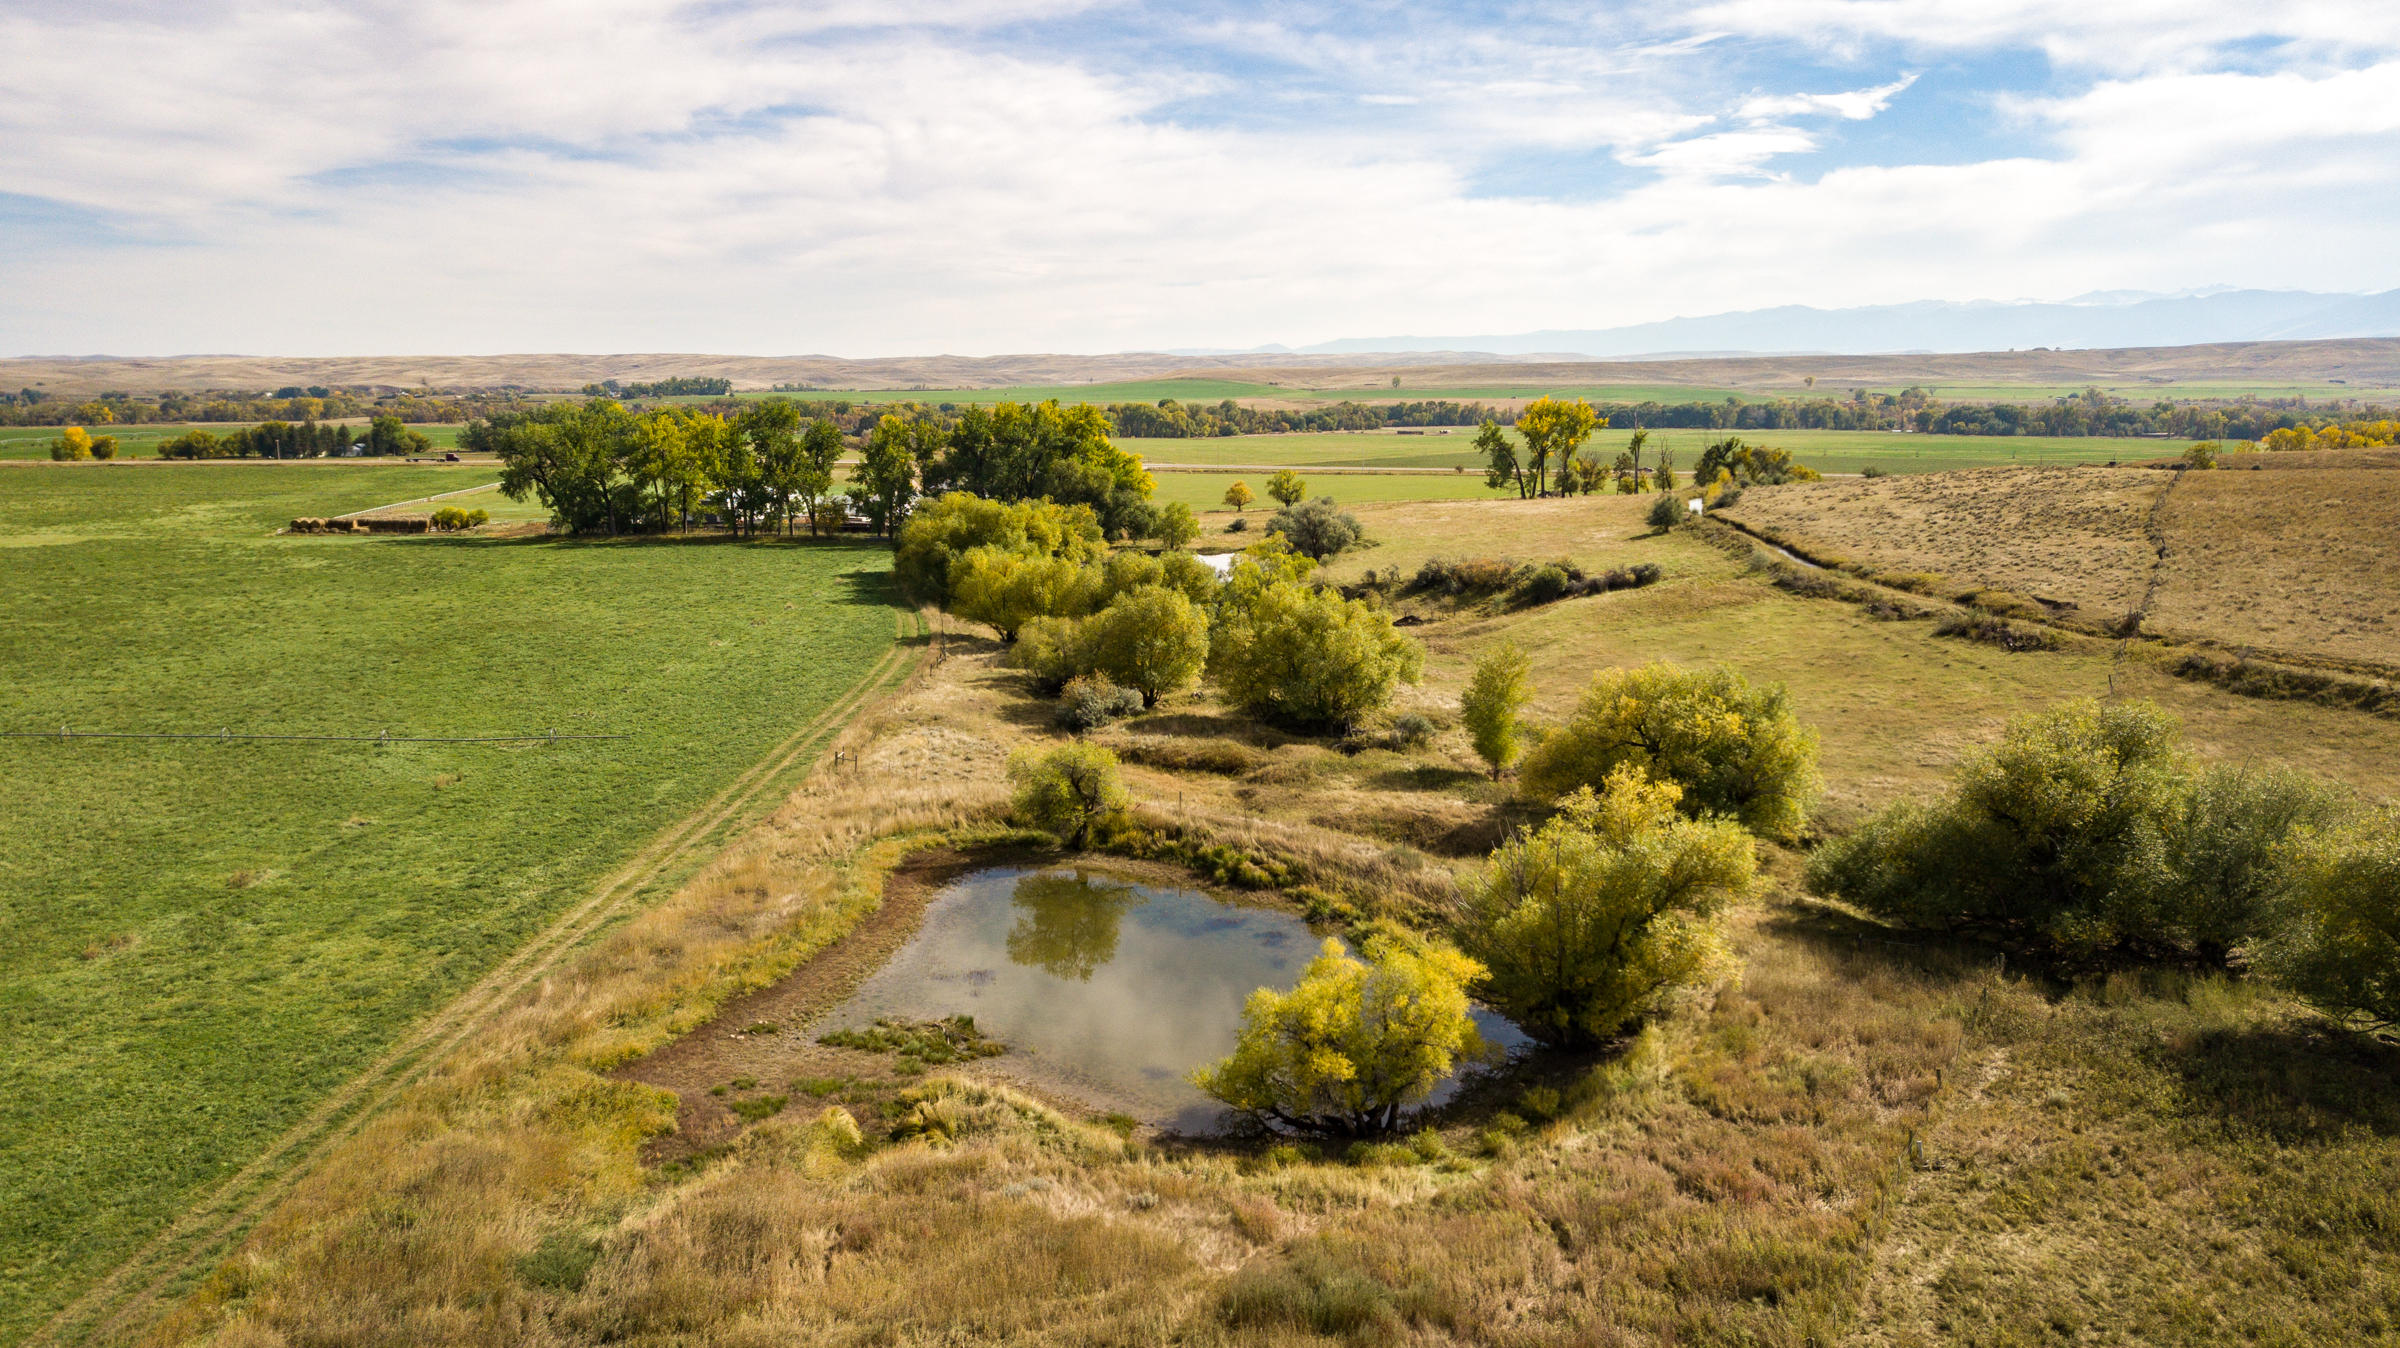 8705 US HWY 14, Ranchester, Wyoming 82839, 4 Bedrooms Bedrooms, ,3.5 BathroomsBathrooms,Ranch,For Sale,US HWY 14,18-1108